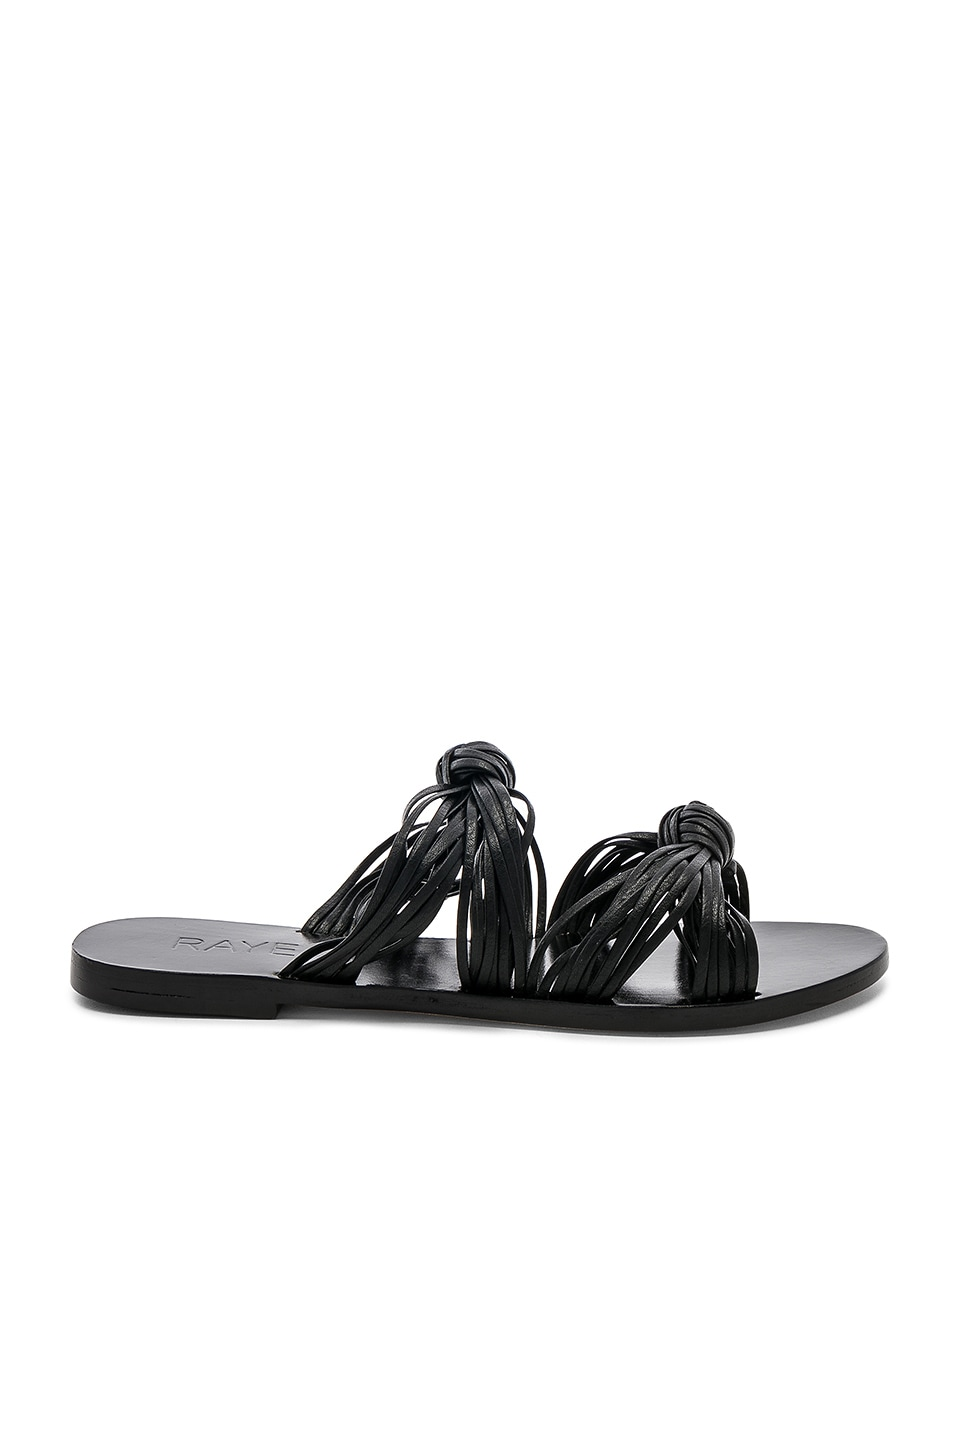 RAYE Lillian Slide in Black